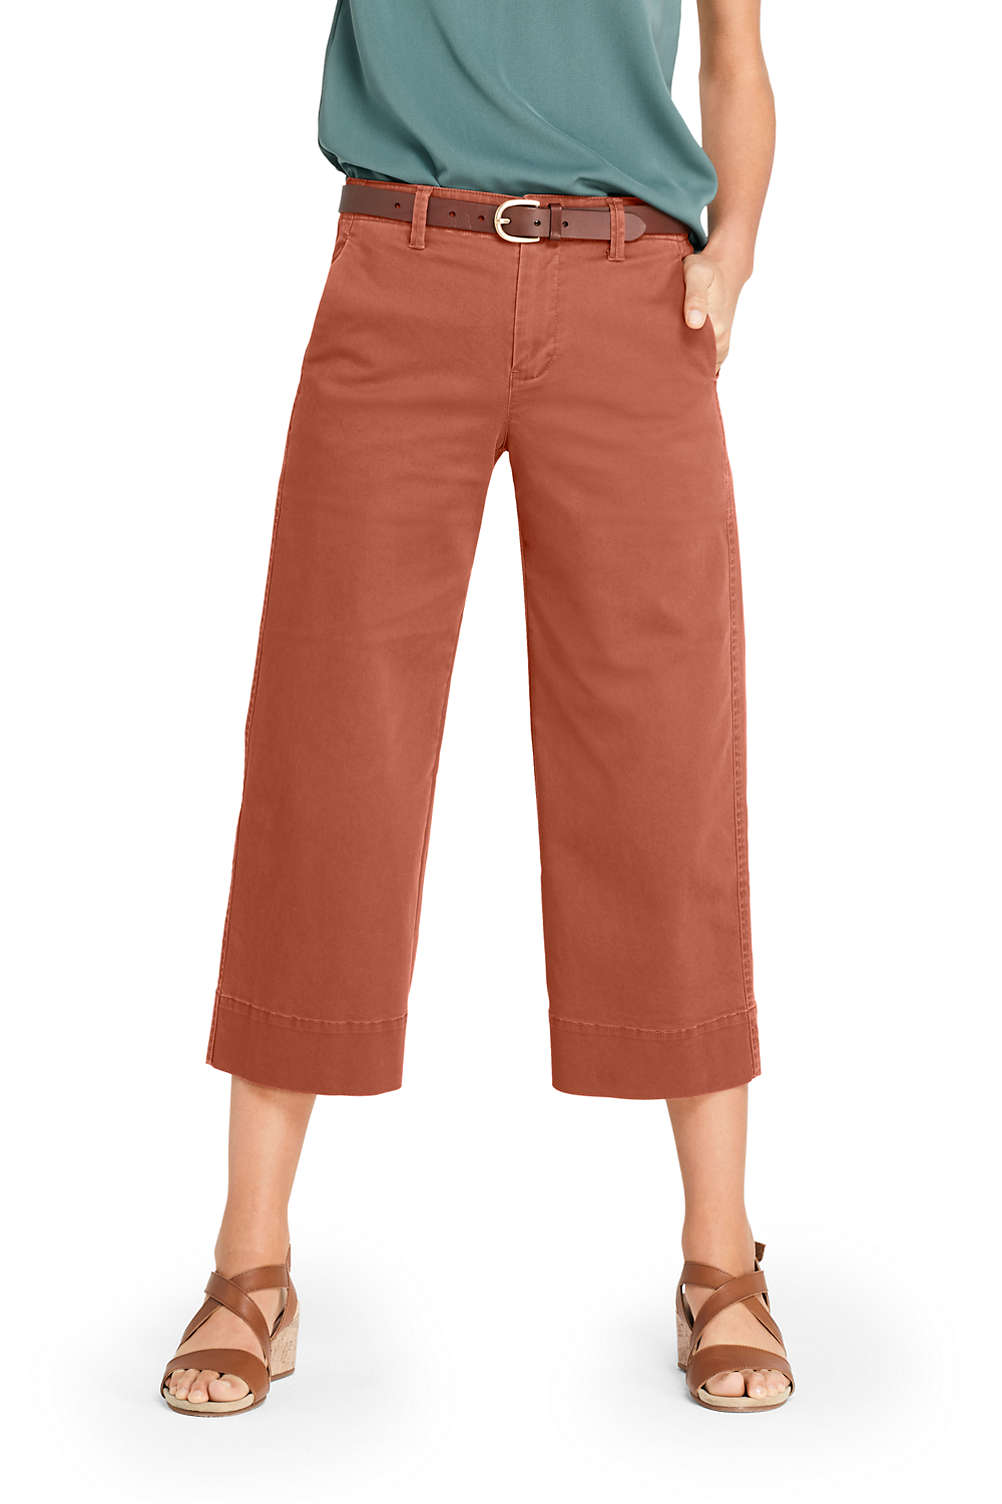 b8dcd4179fbc Women's Mid Rise Chino Wide Leg Crop Pants from Lands' End